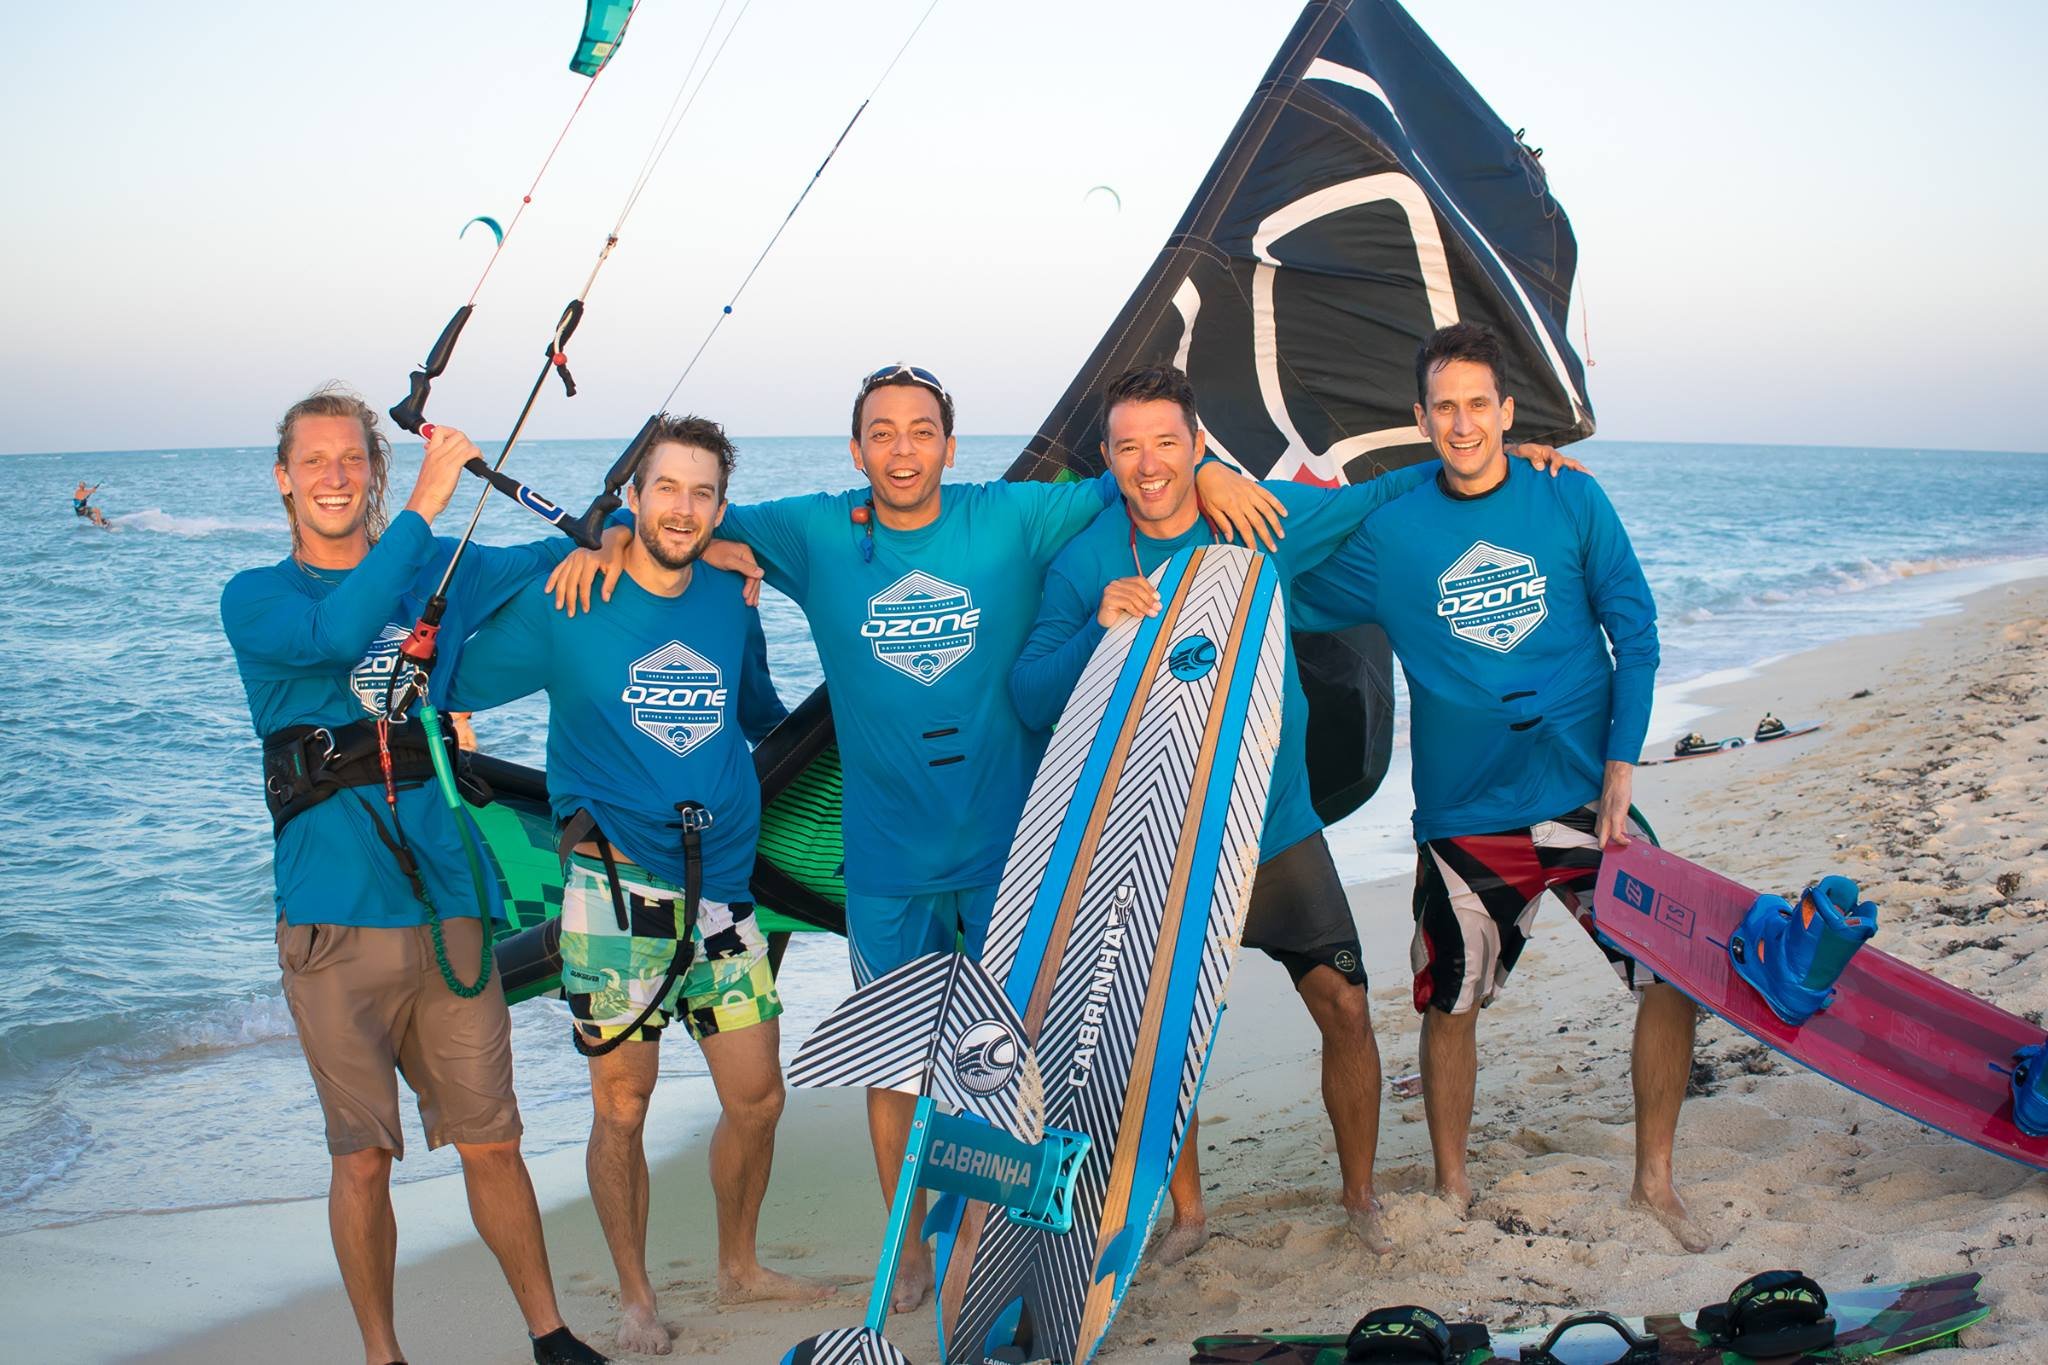 Kitesurf Lessons - Yalla kitesurf instructors & our associated local kite school will be happy to help you with your kitesurfing progression